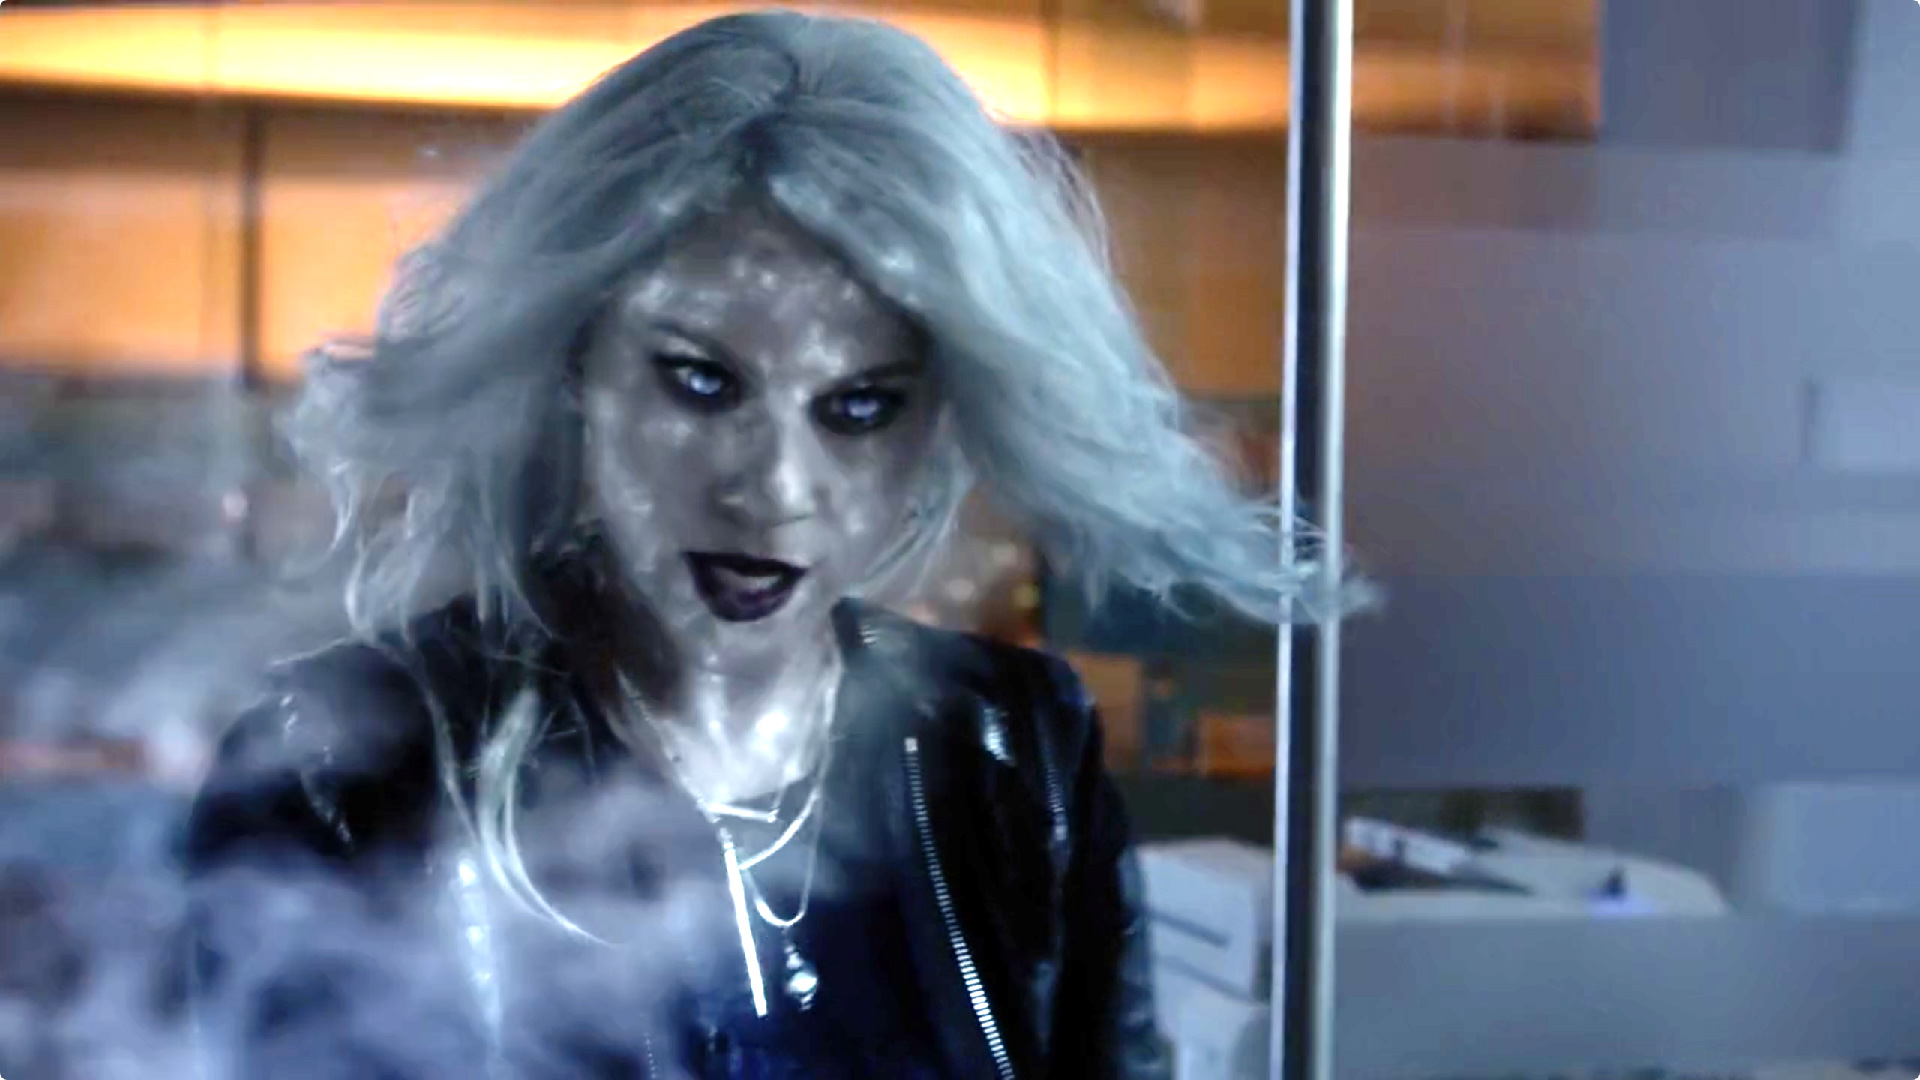 Livewire Returns to Electrify Supergirl - Welcome to the Legion ...